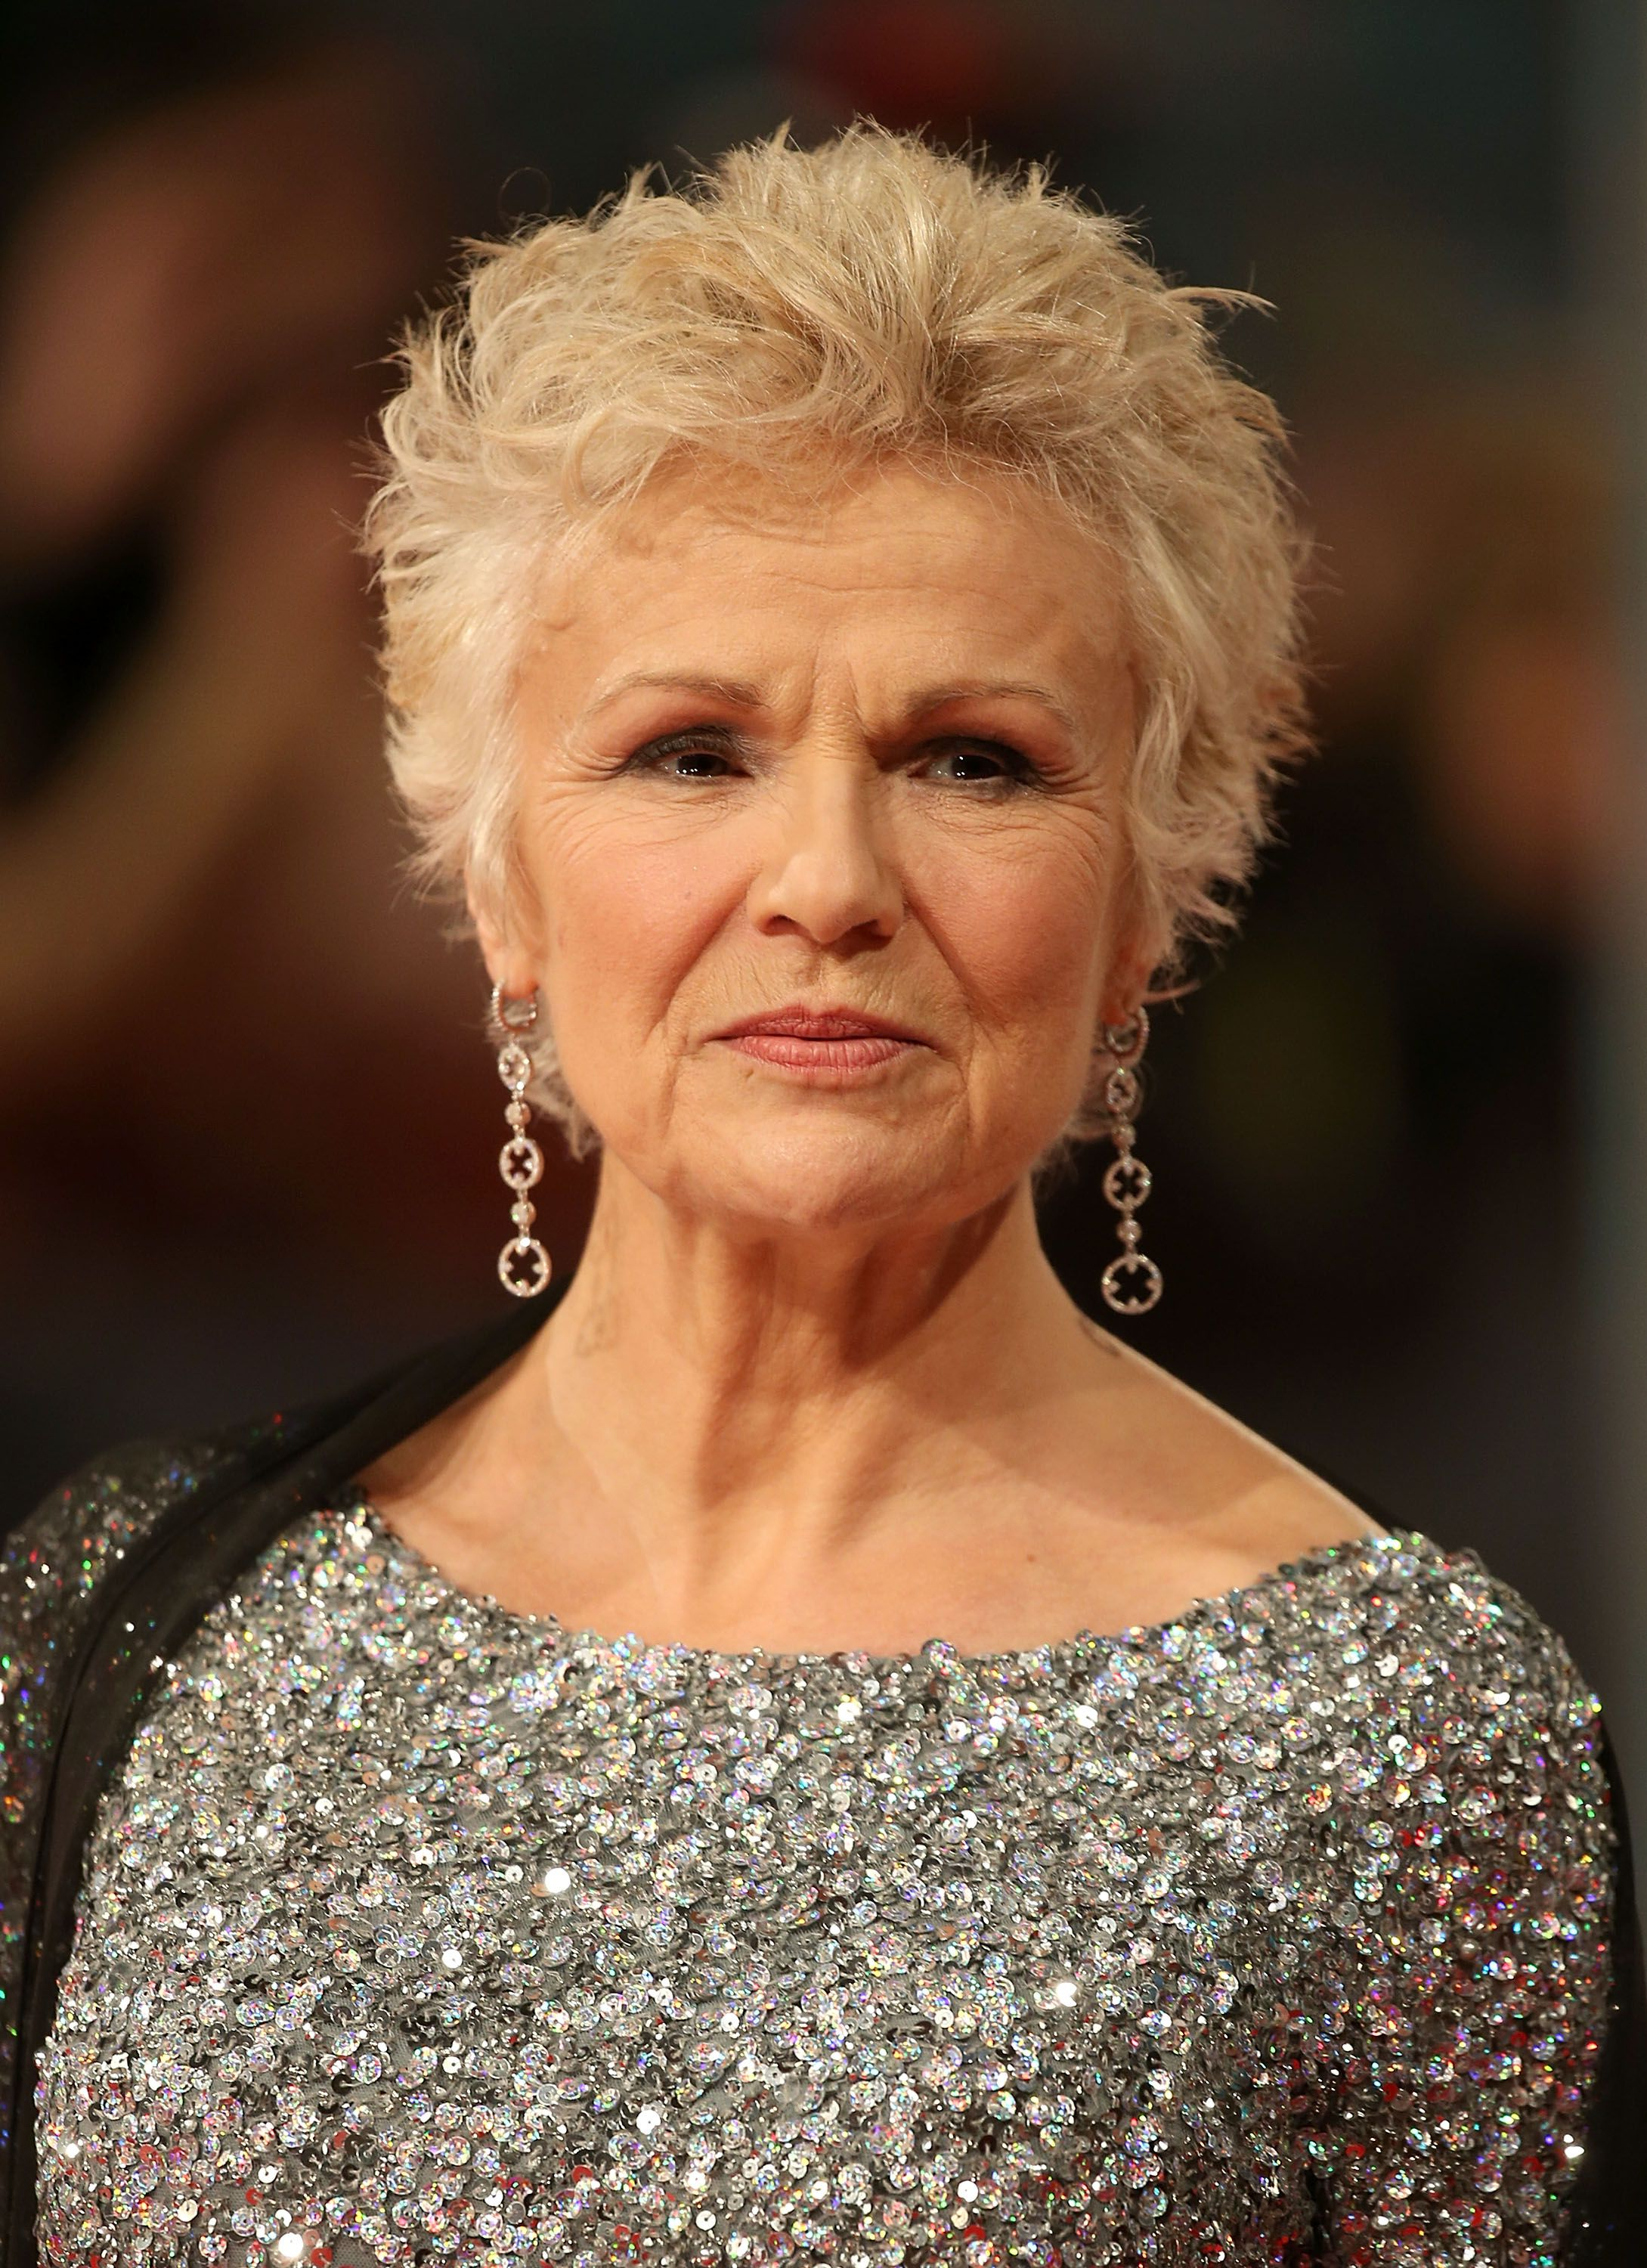 24 Gorgeous Haircuts on Women in Their 60s